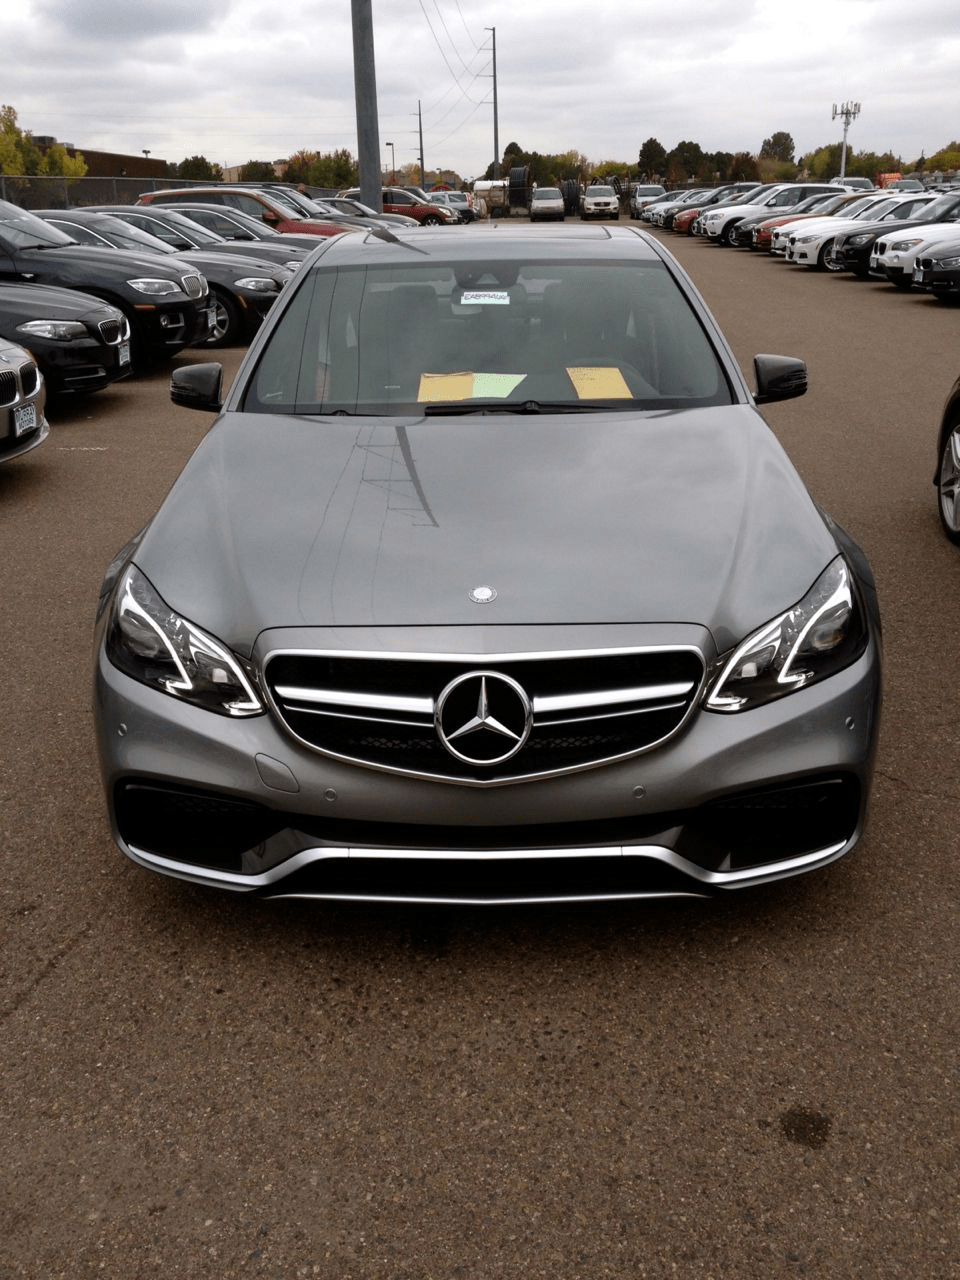 Photos of the week 2014 mercedes benz e63 amg s 4matic for Mercedes benz e63 s amg